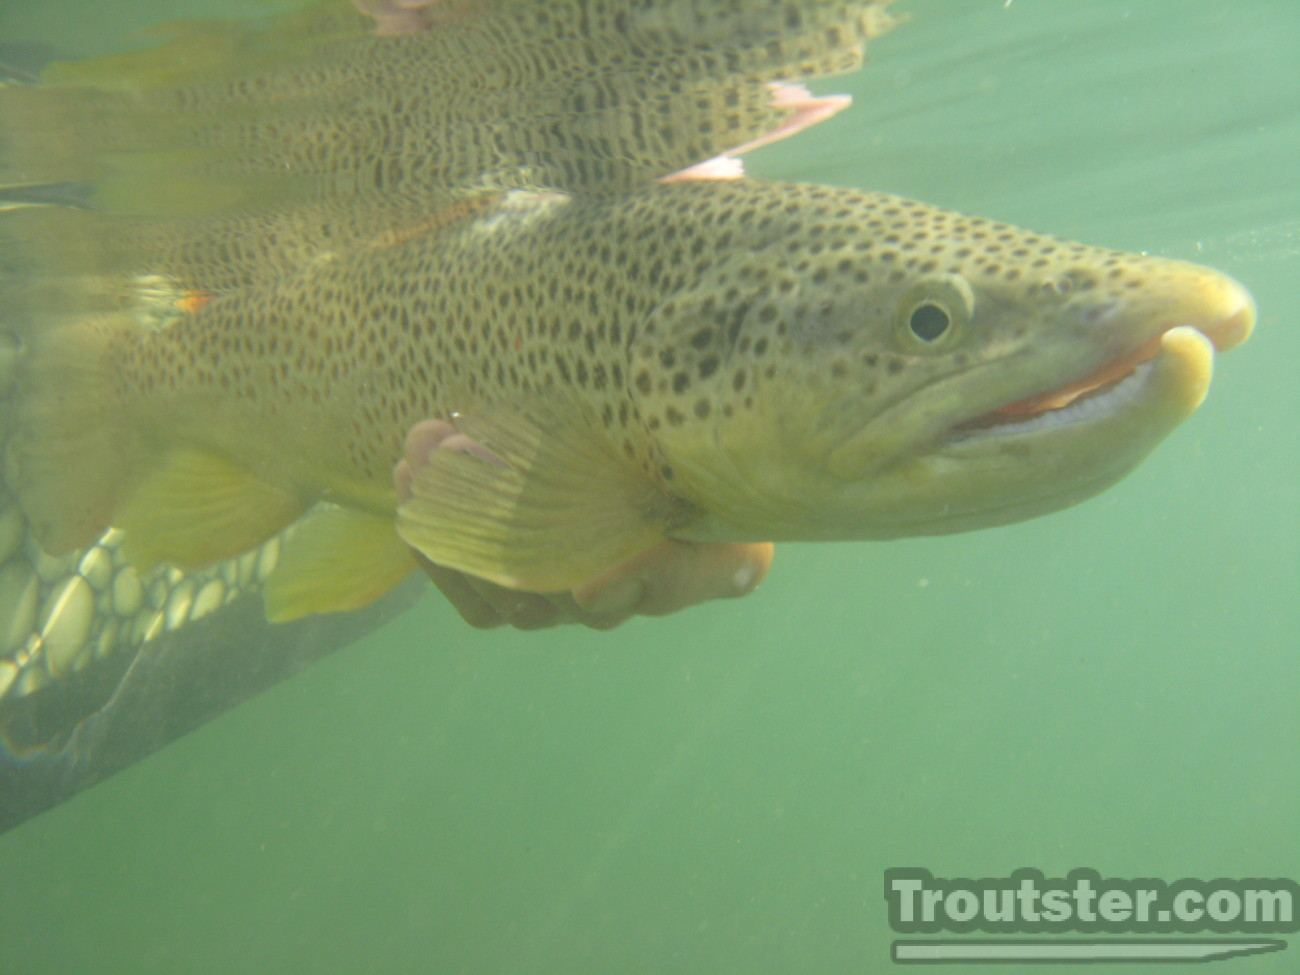 Brown trout with a large kype